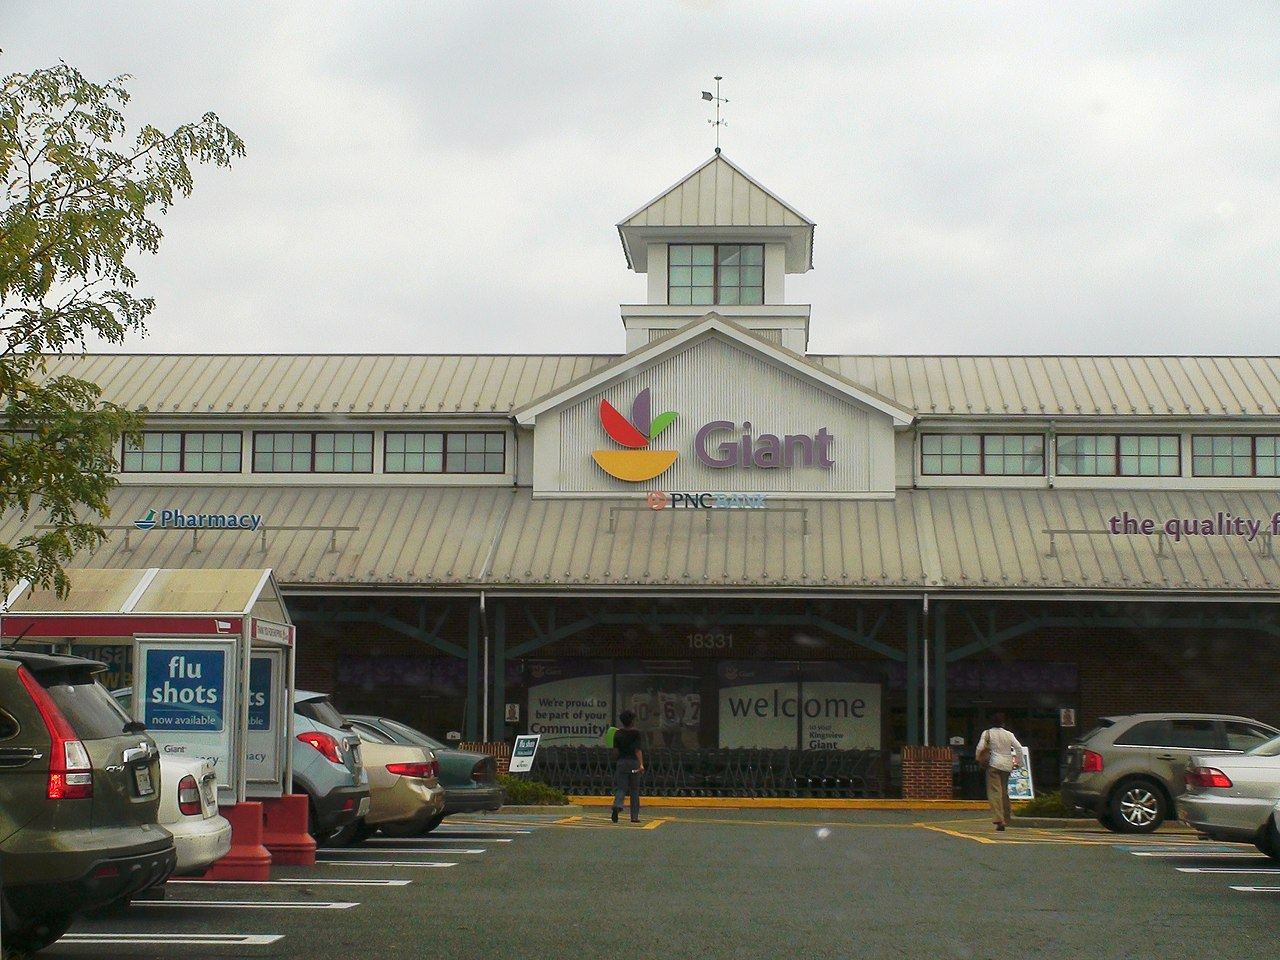 Giant Food Store Maryland